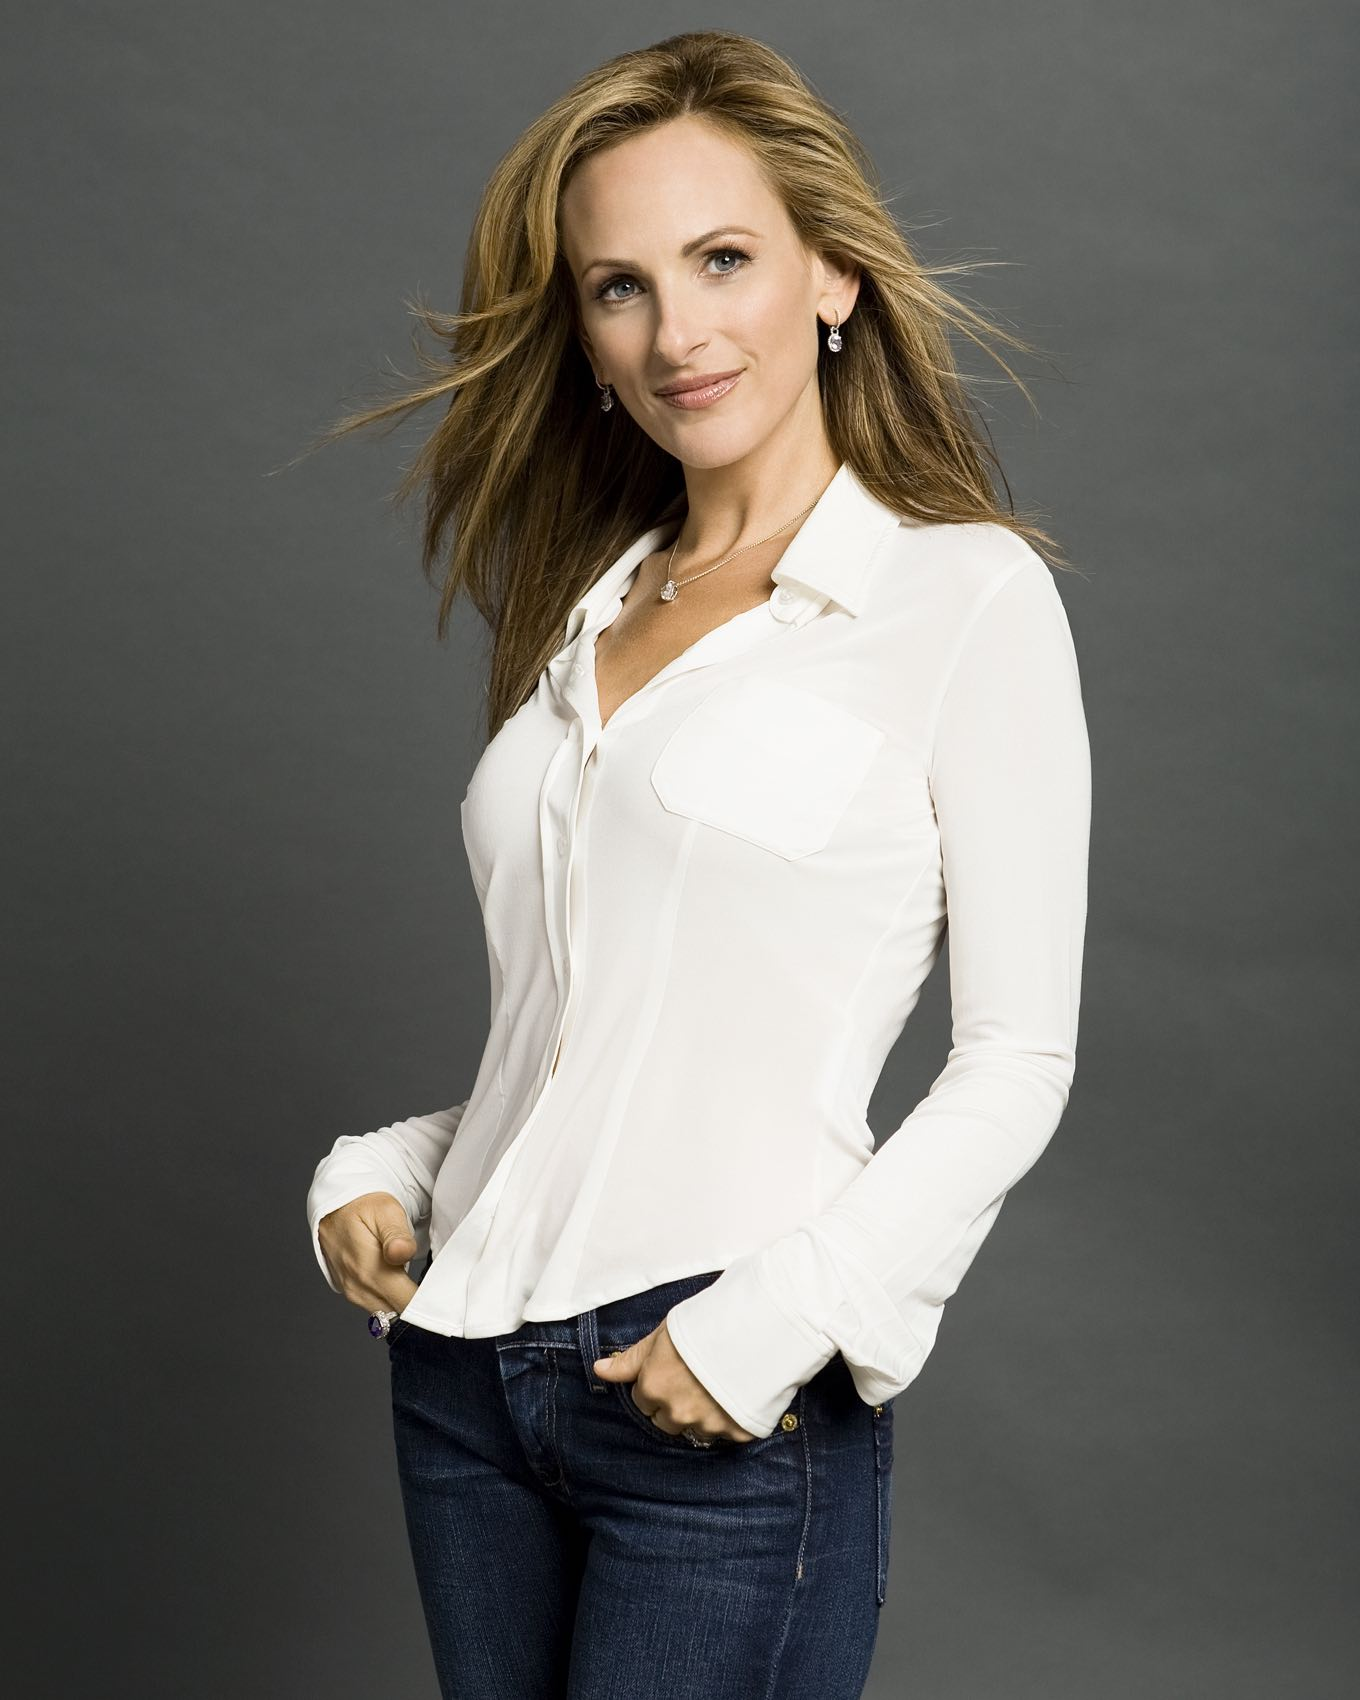 Interview with Academy & Oscar Award Winning Marlee Matlin